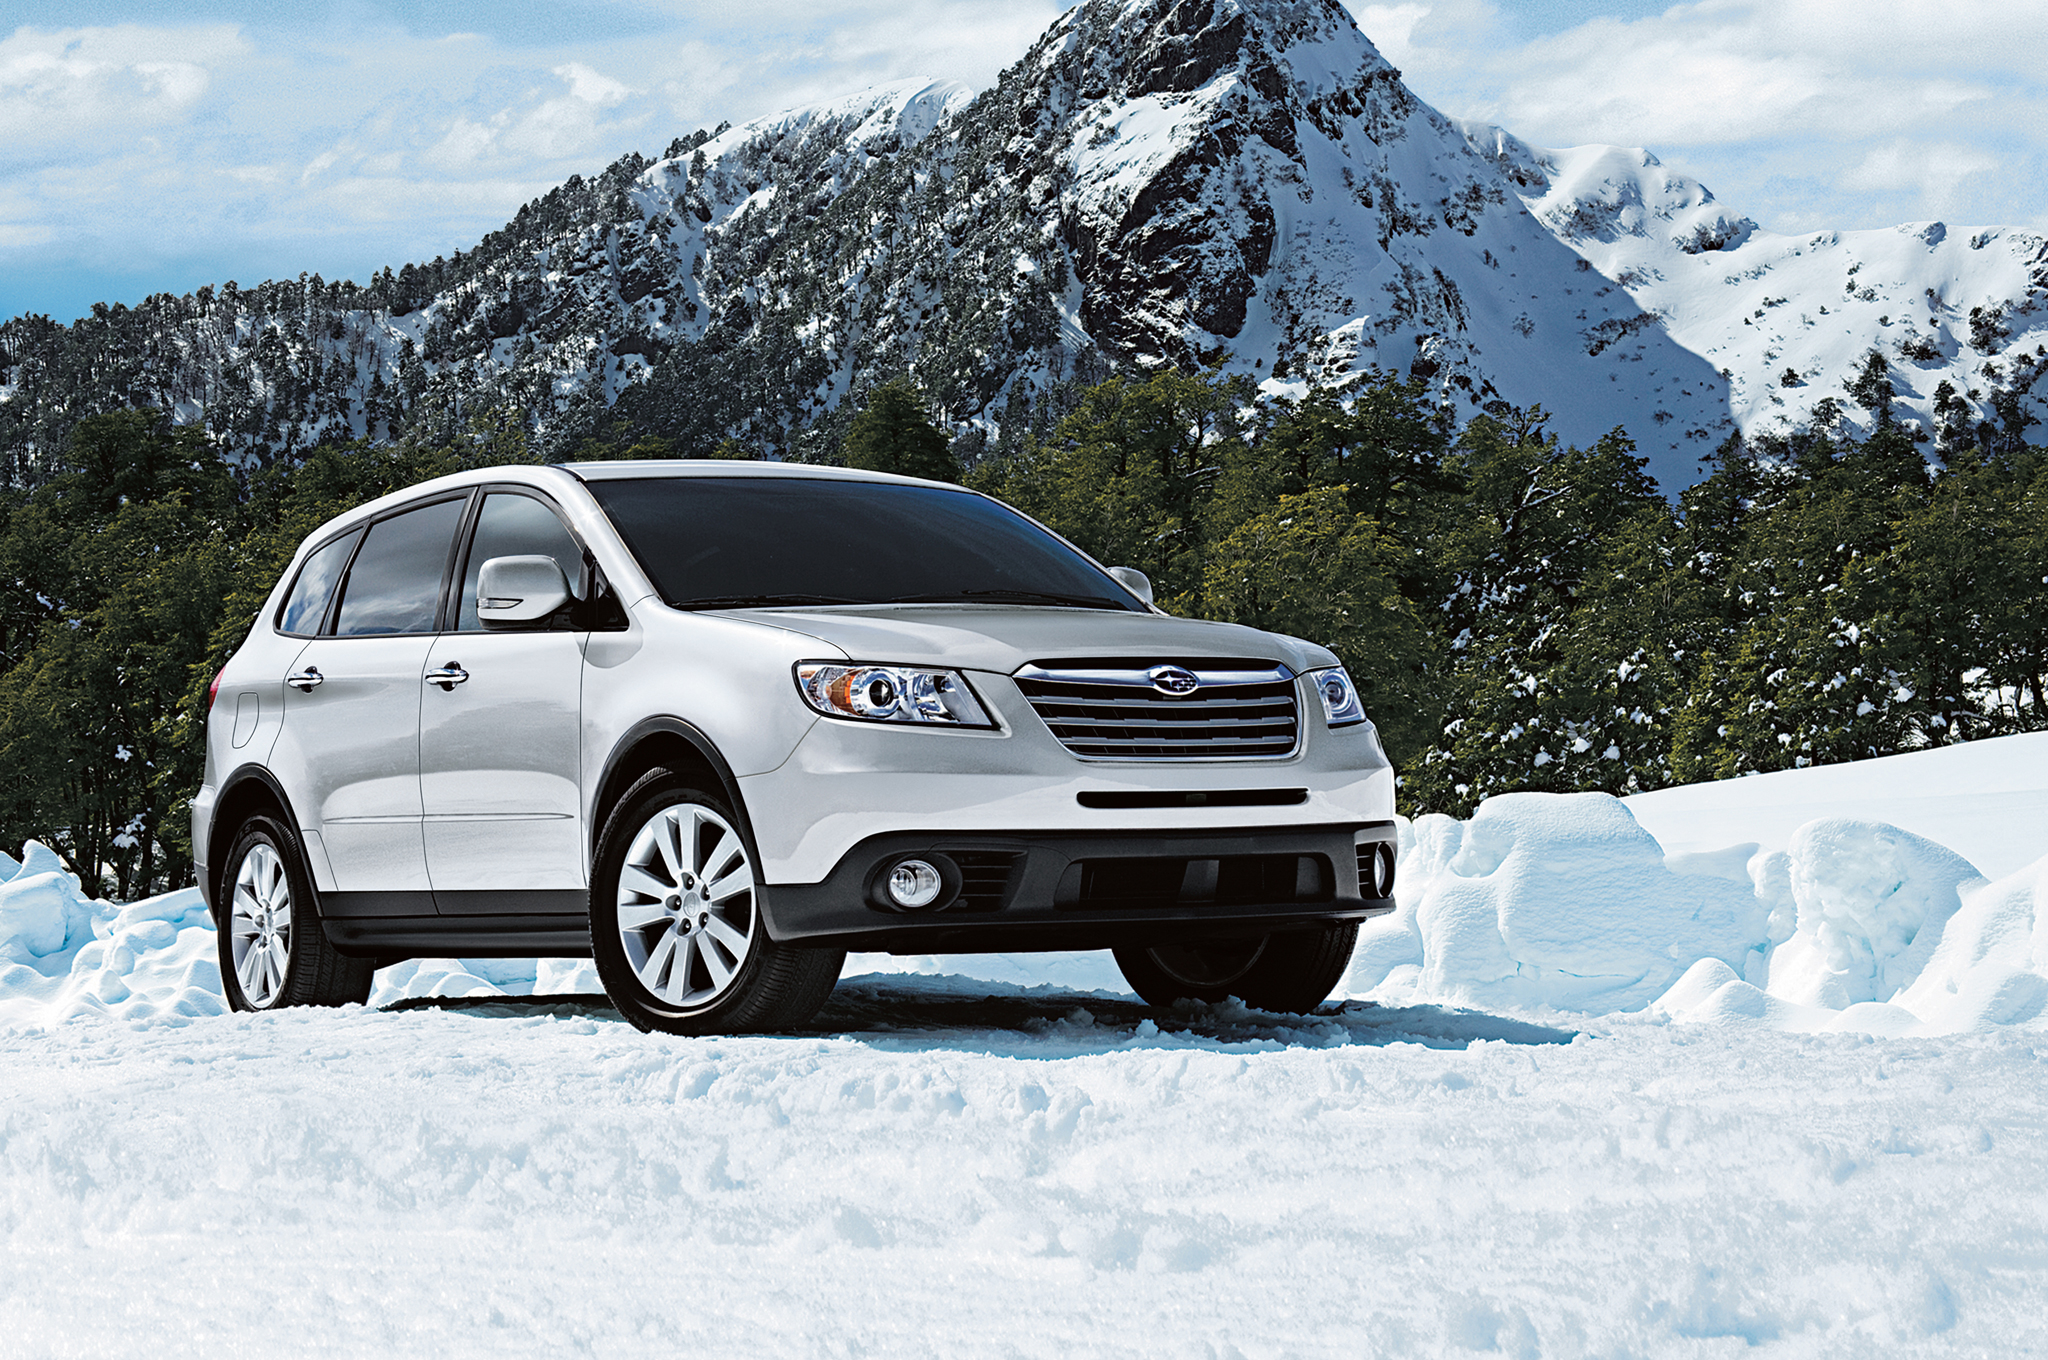 Subaru Tribeca Discontinued After 2014 Replacement Coming Motor Trend